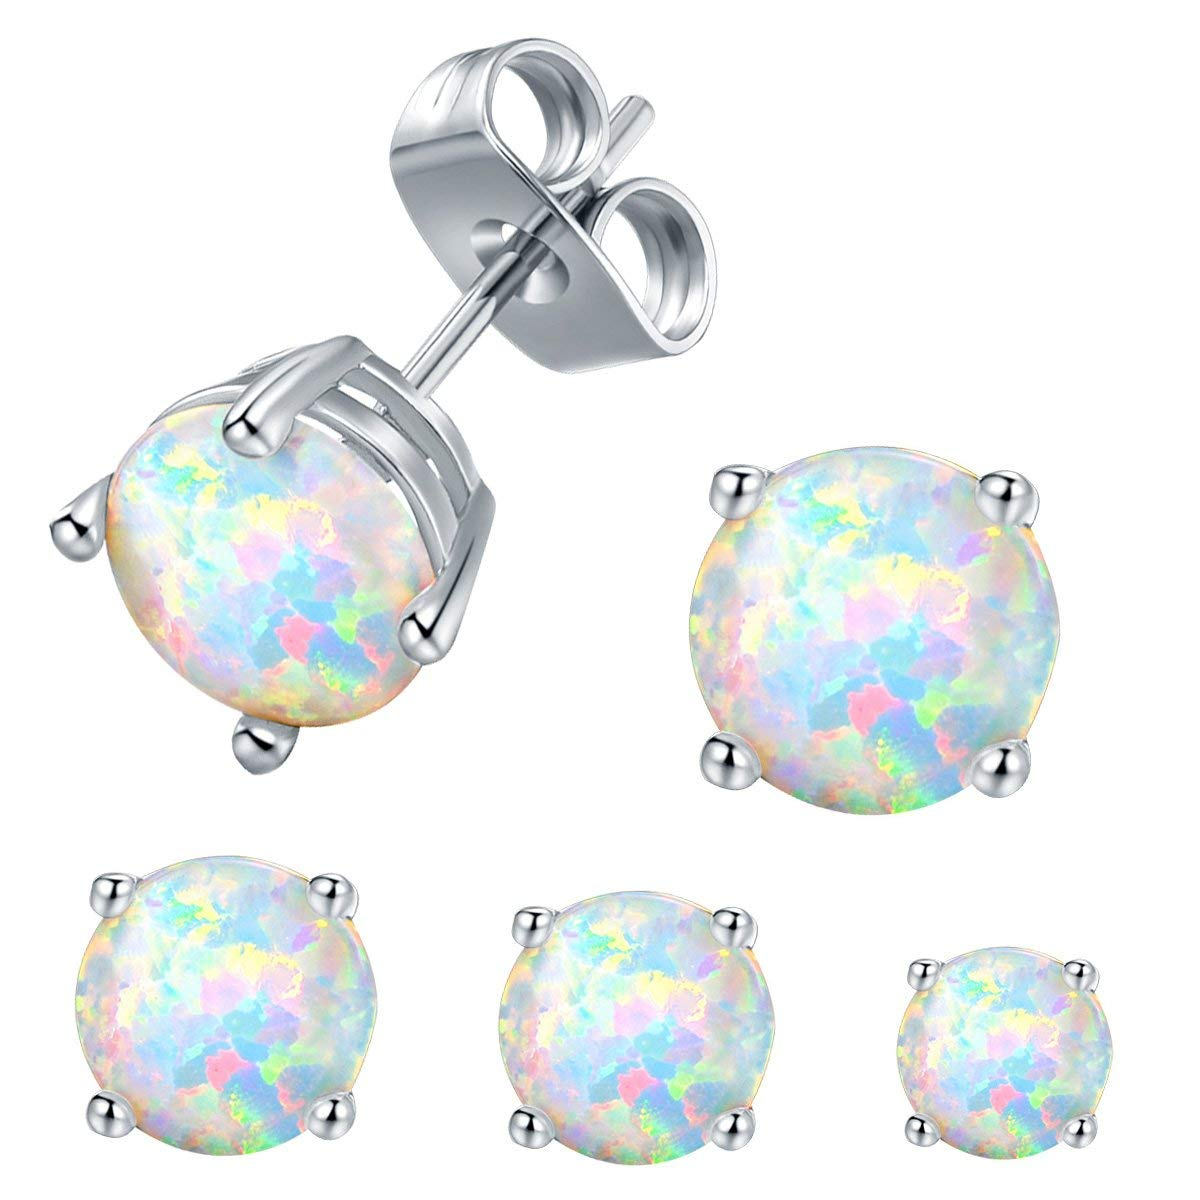 71300cf62 Get Quotations · VOLUKA Opal Stud Earrings 18K White Gold Plated for Womens  Sensitive Ears 3 Pairs 3/